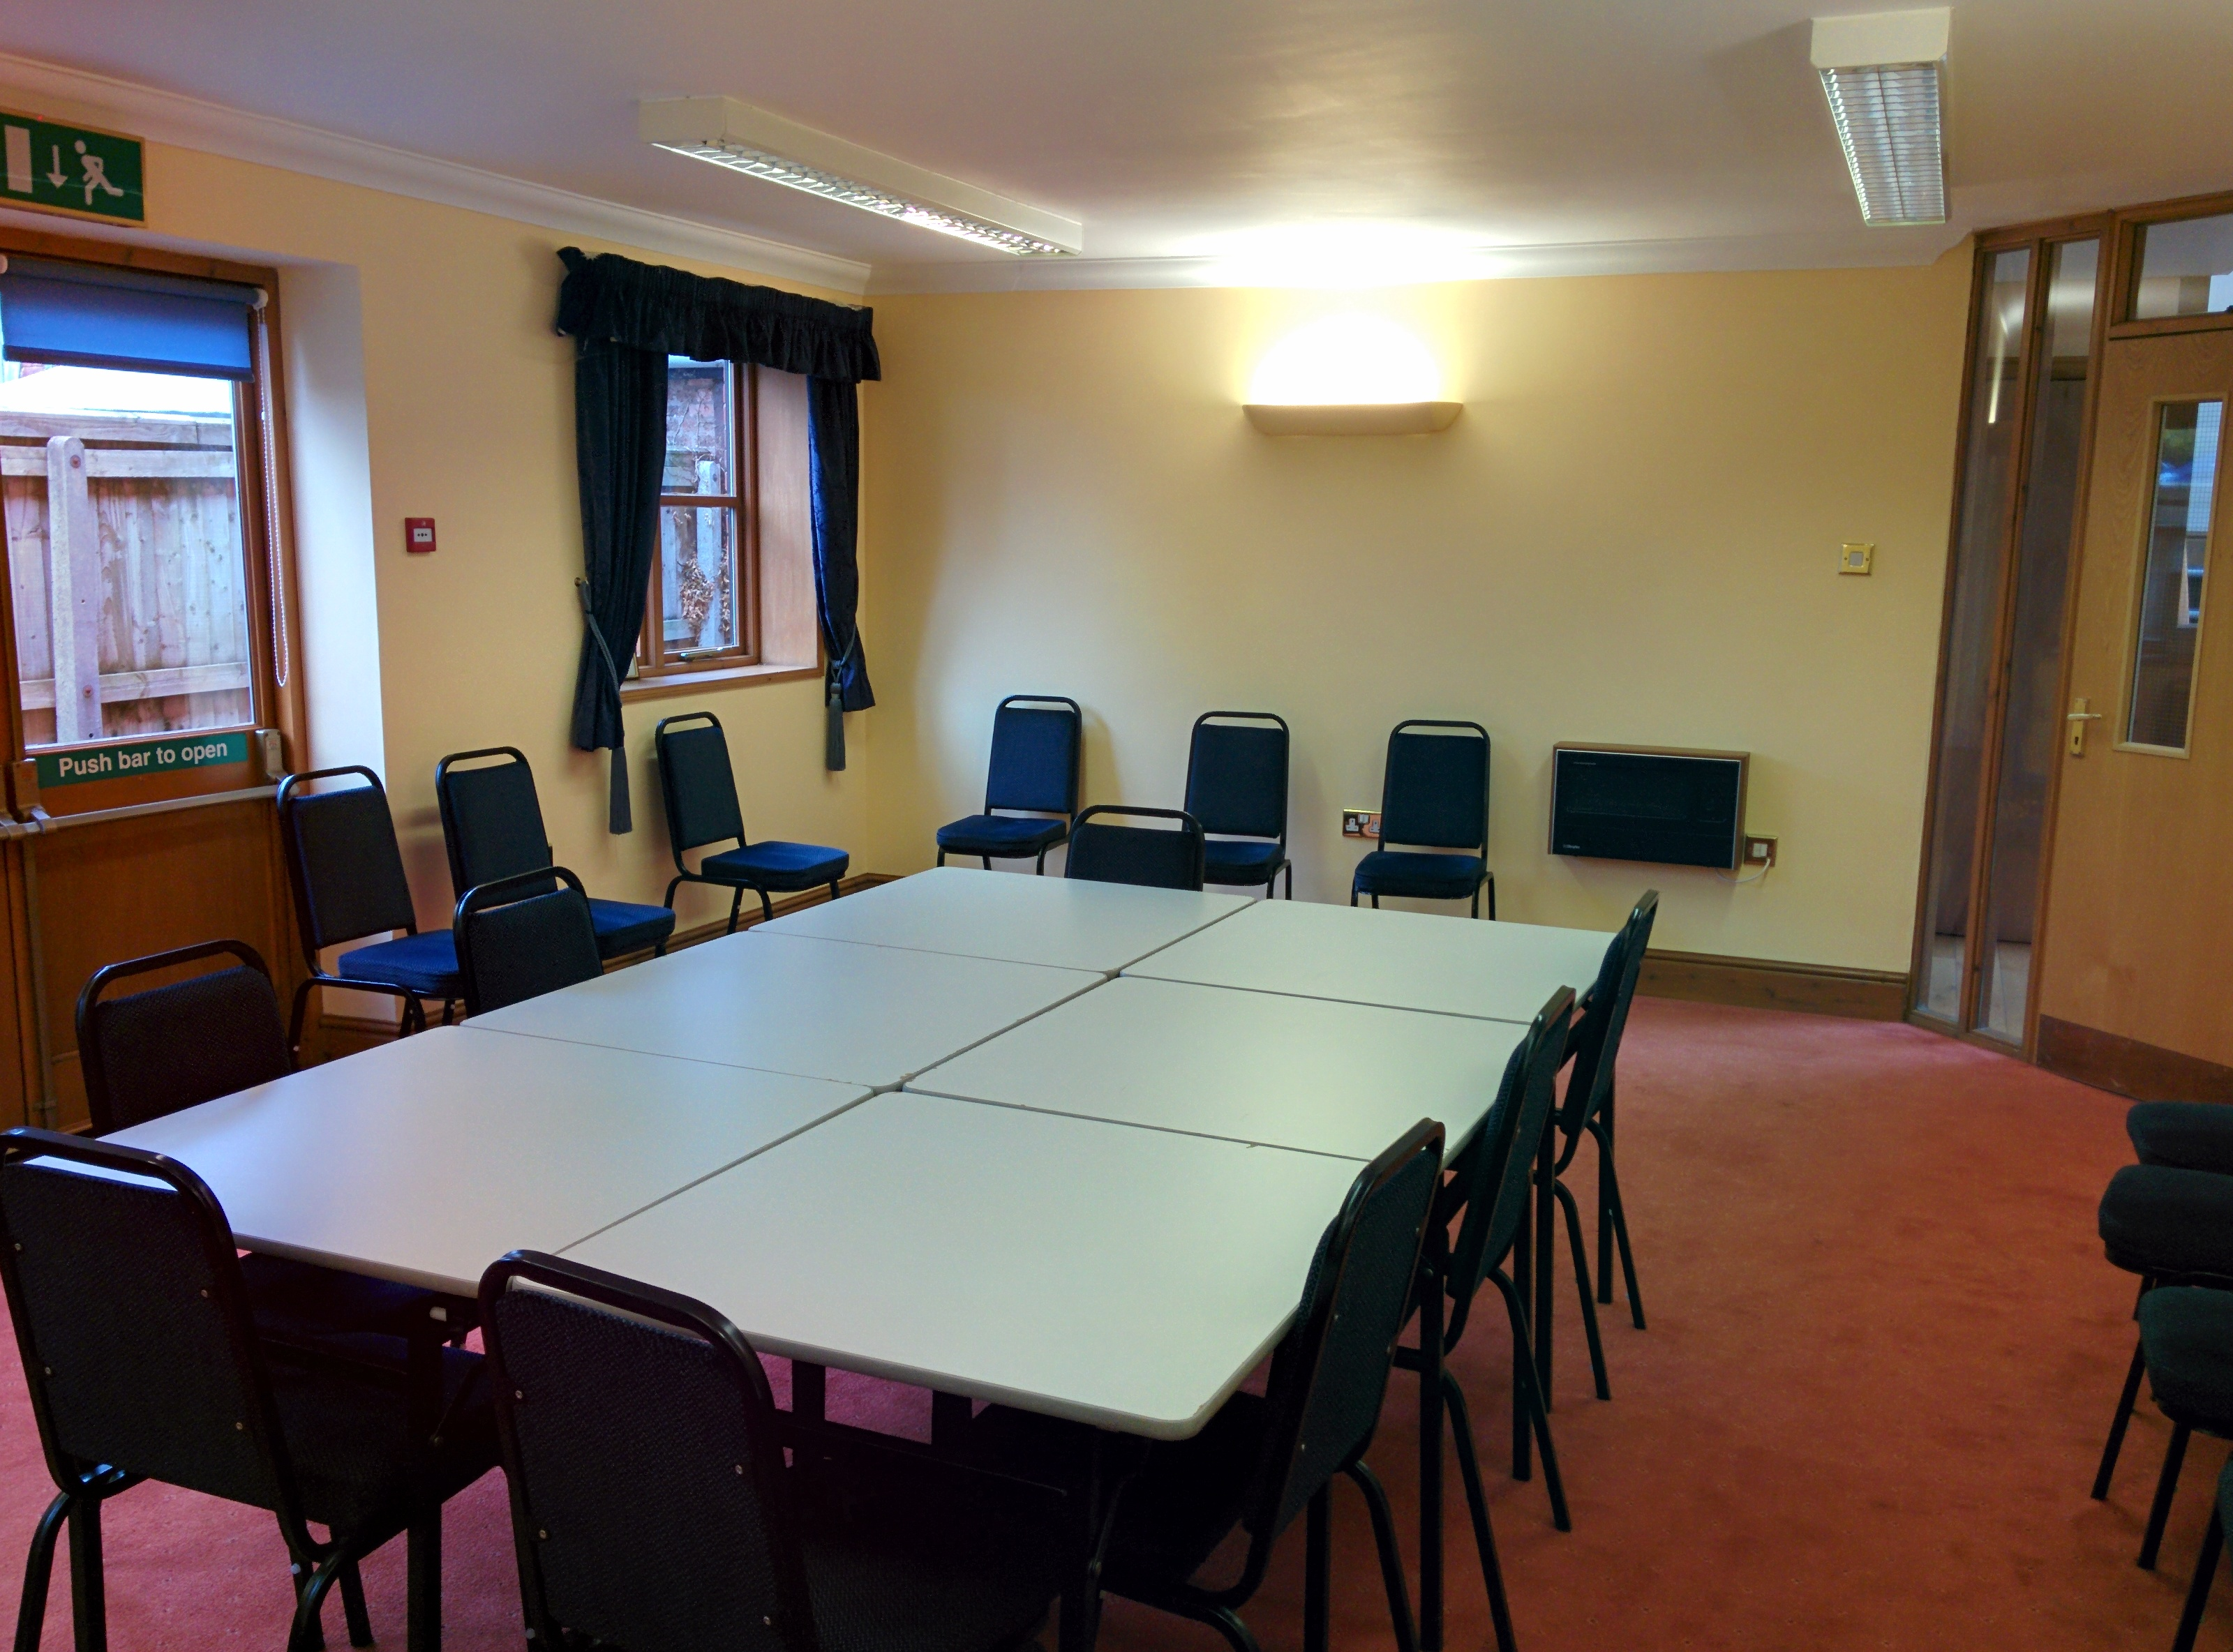 The meeting room at Dymock Parish Hall.